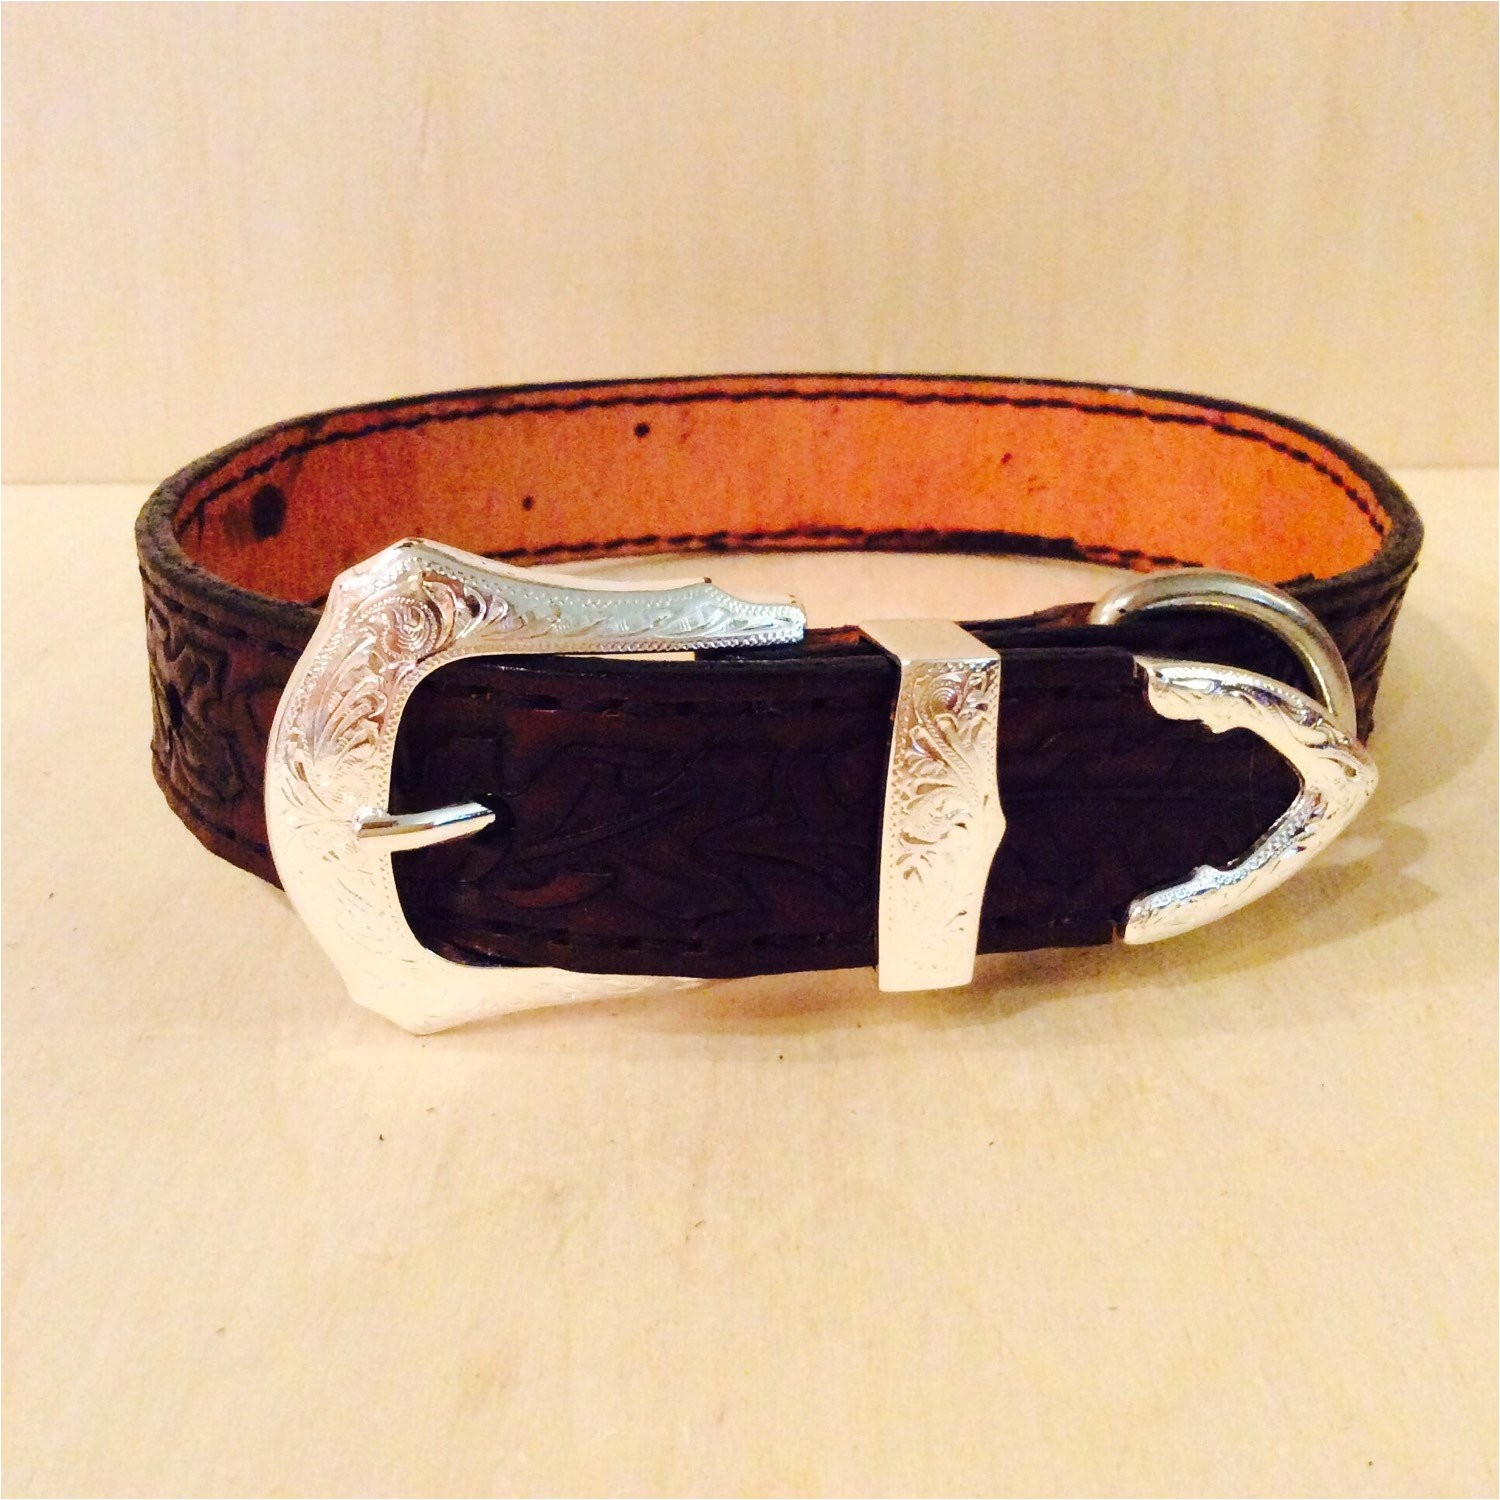 handmade tooled leather dog collar with